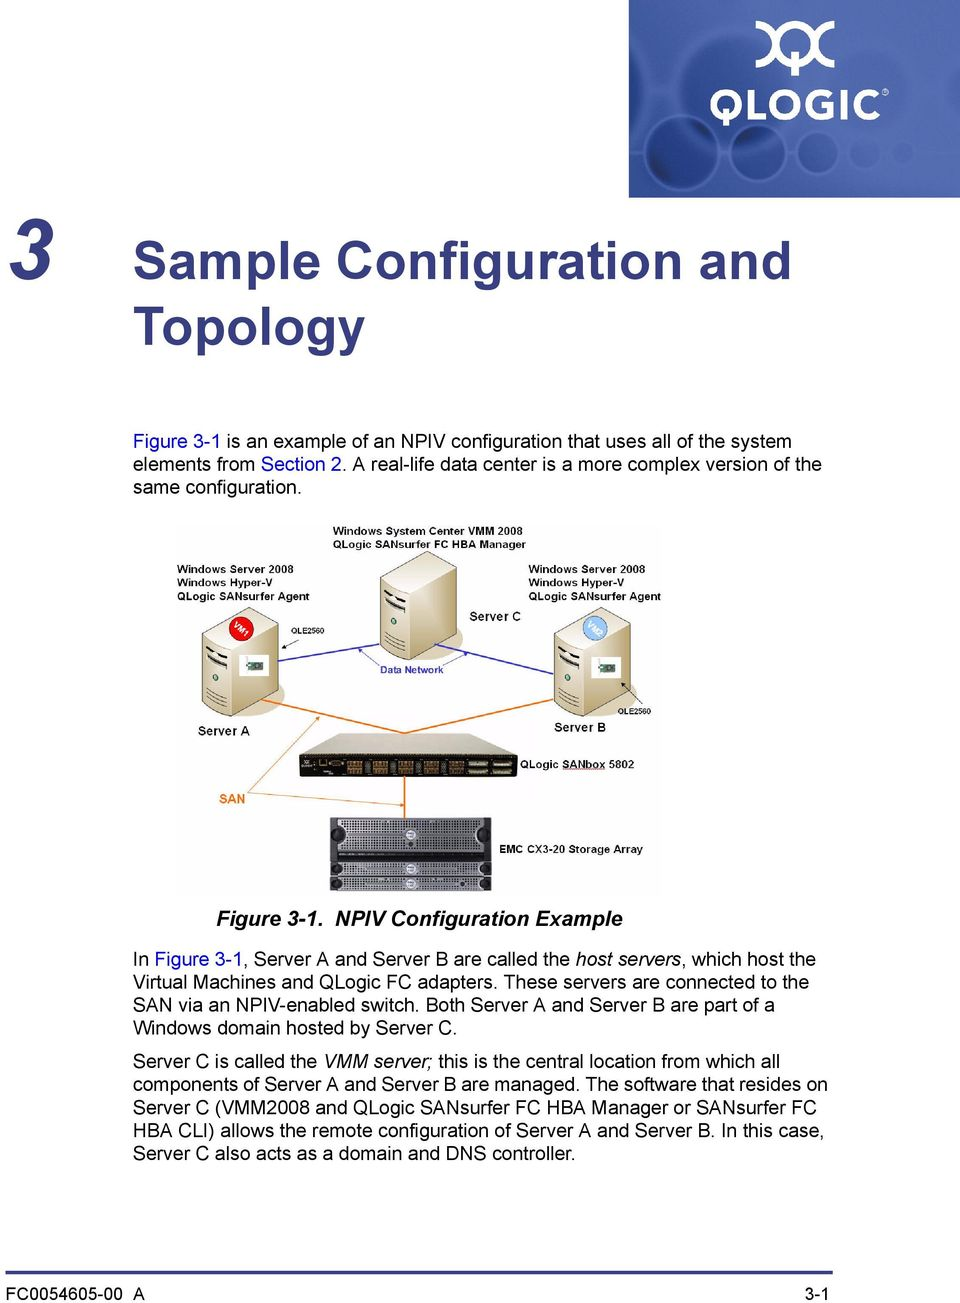 NPIV Configuration Example In Figure 3-1, Server A and Server B are called the host servers, which host the Virtual Machines and QLogic FC adapters.